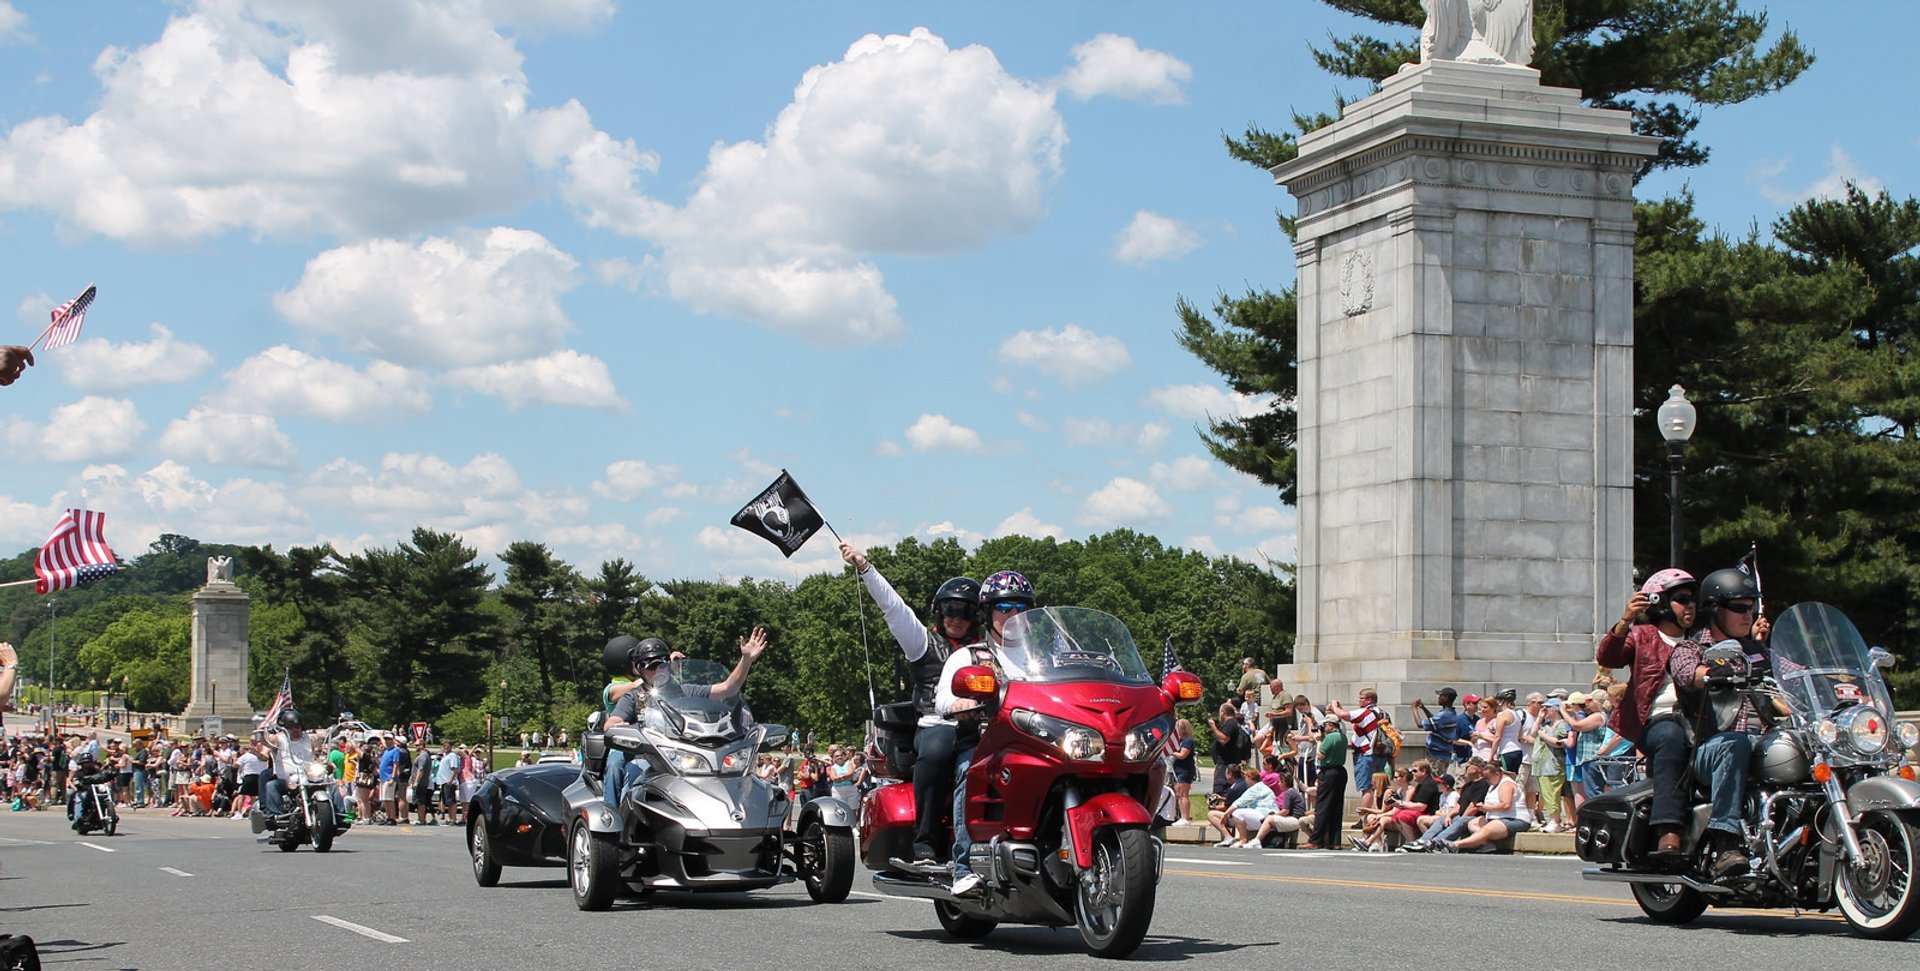 Best time for Rolling Thunder Run in Washington, D.C. 2020